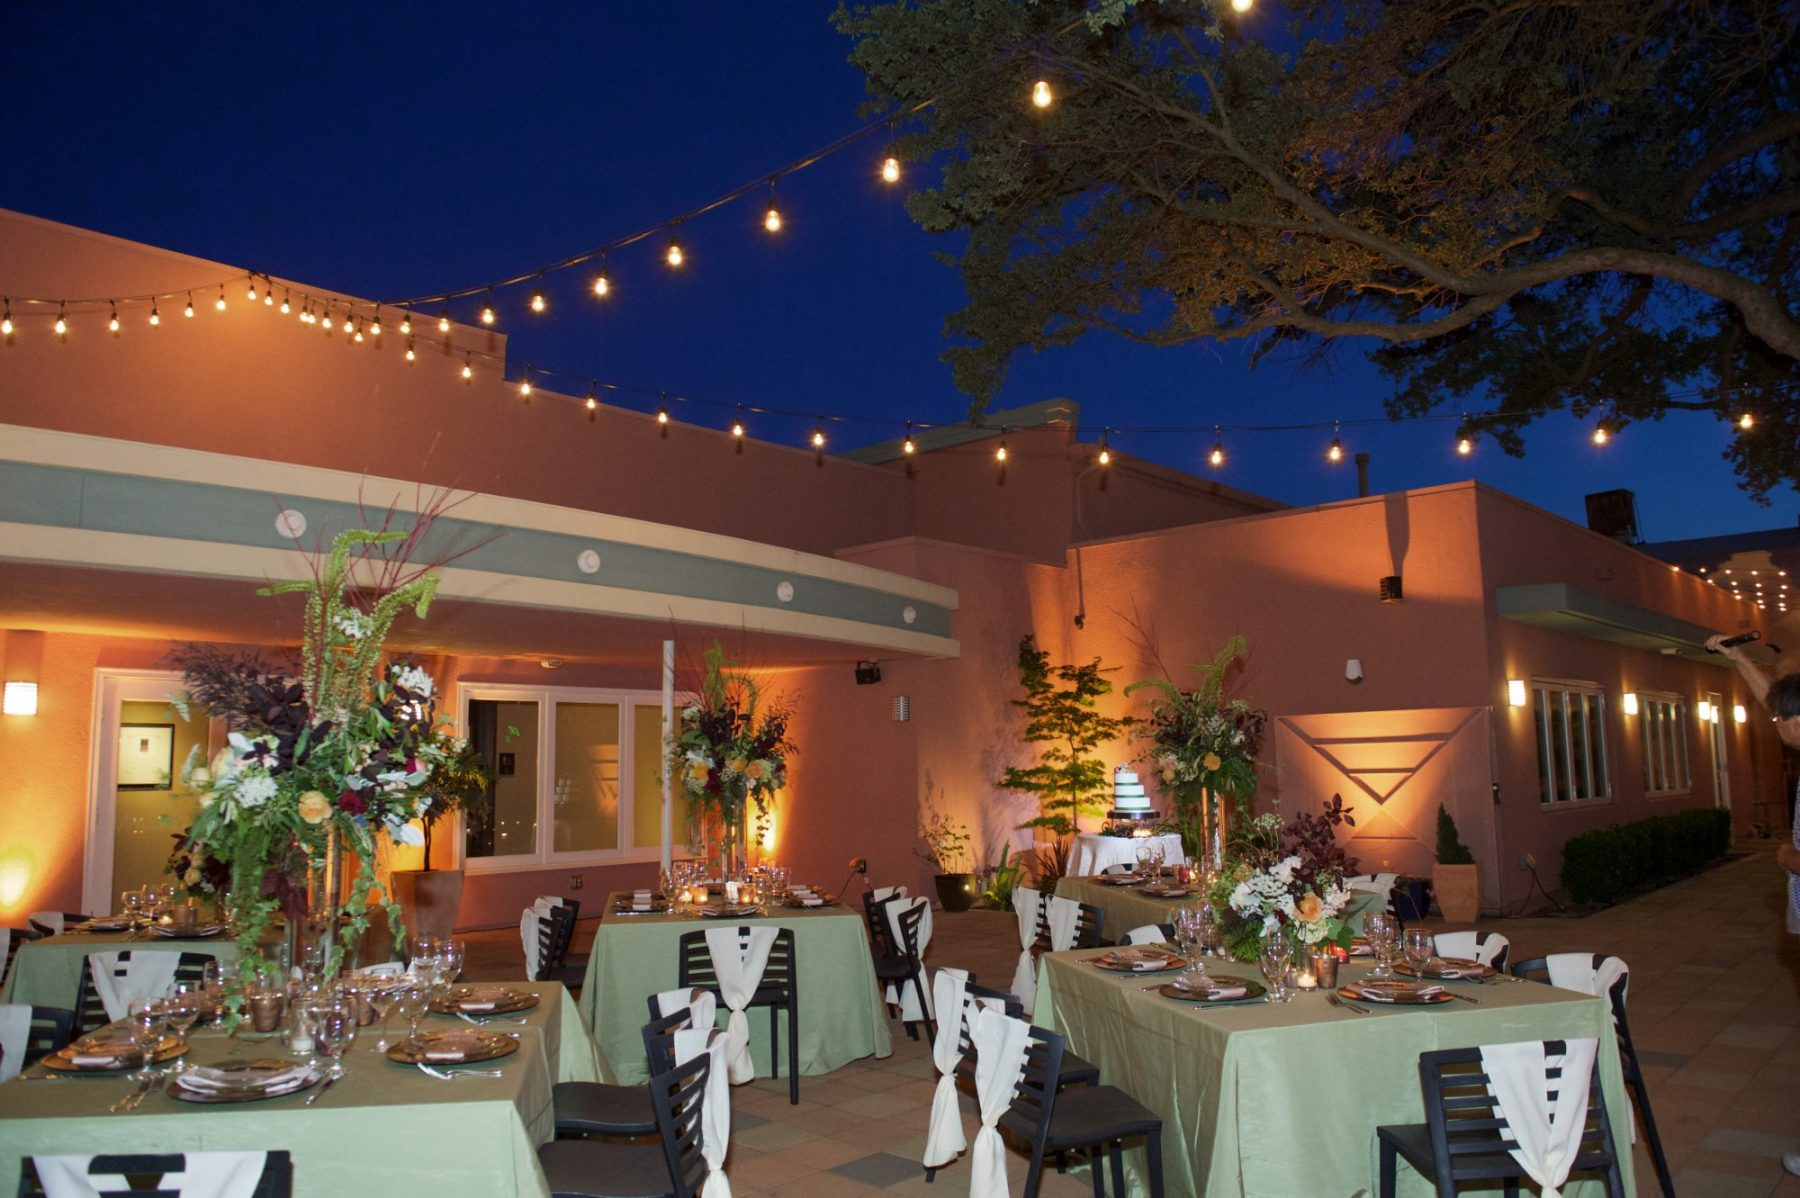 at and light in market your own home zag most a lights wedding the lovely for with also display backyard brilliant zig